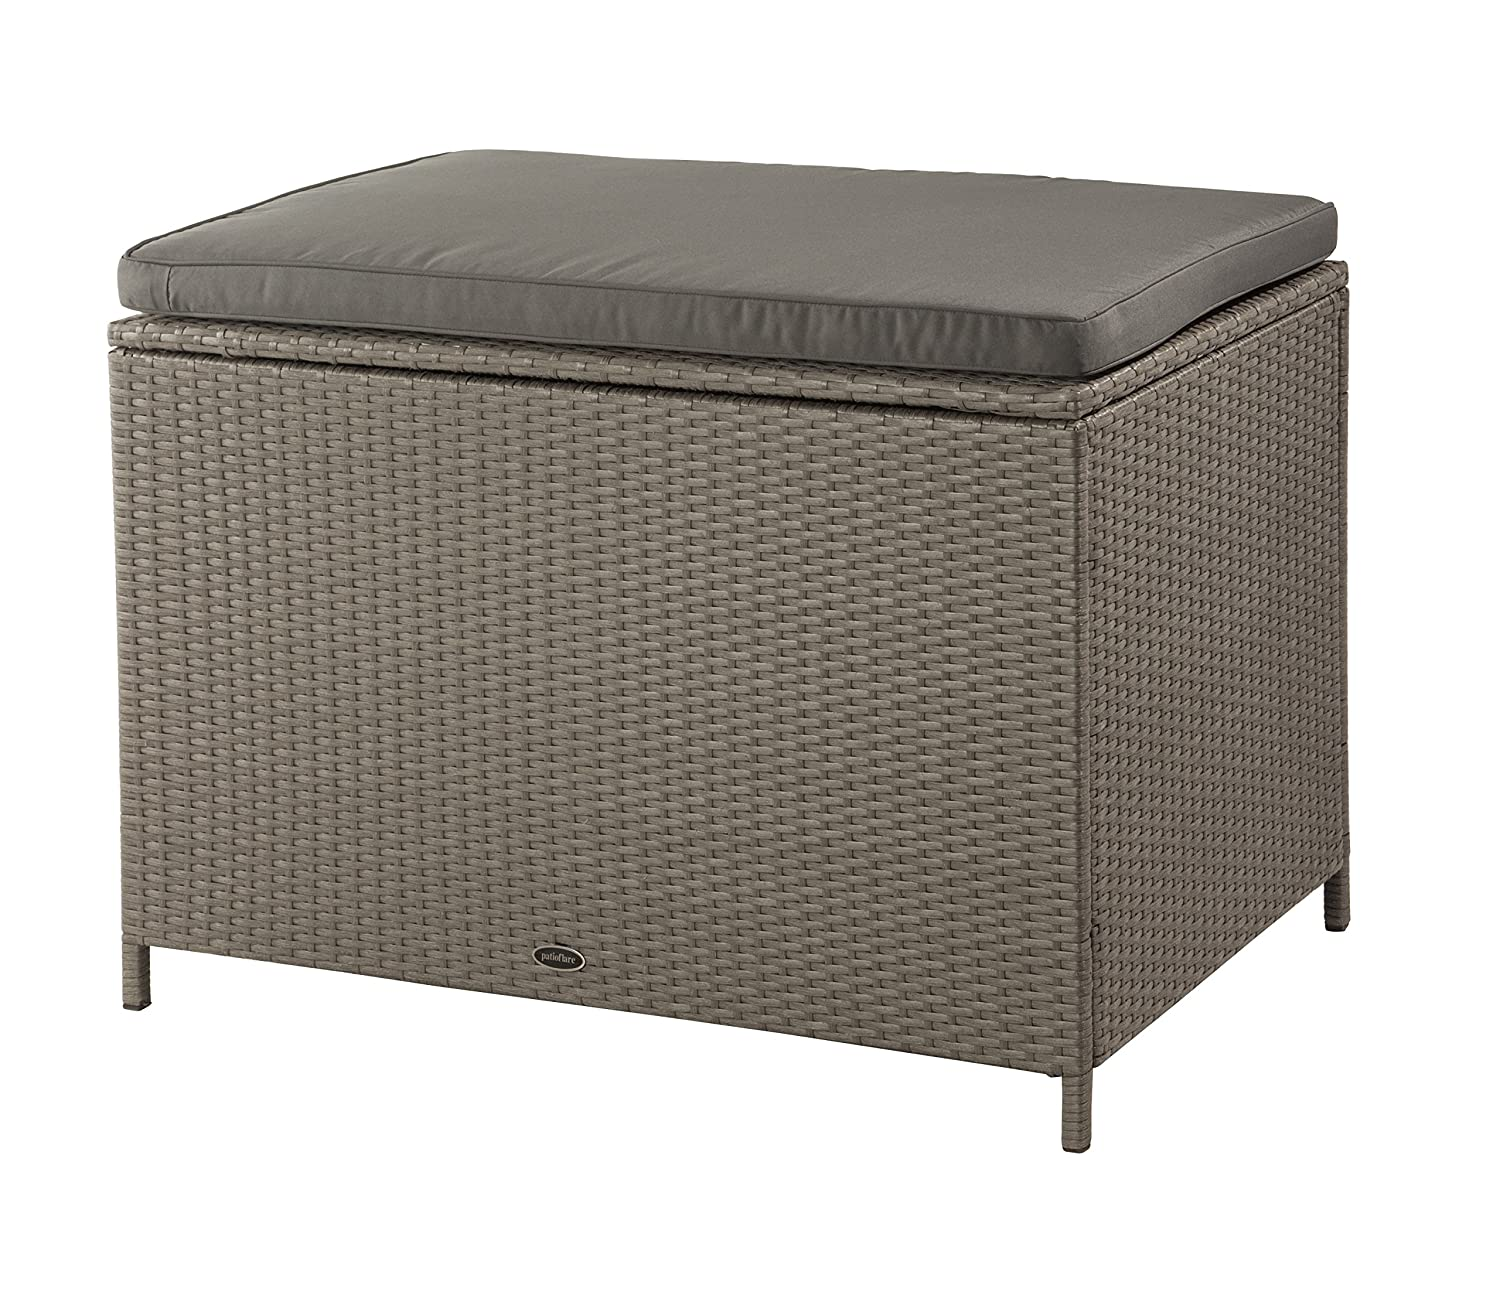 Patioflare PF-AC-209C-BR Ferrara KD Deck Box Waterproof Seat with Brown Wicker, Dark Grey Cushion